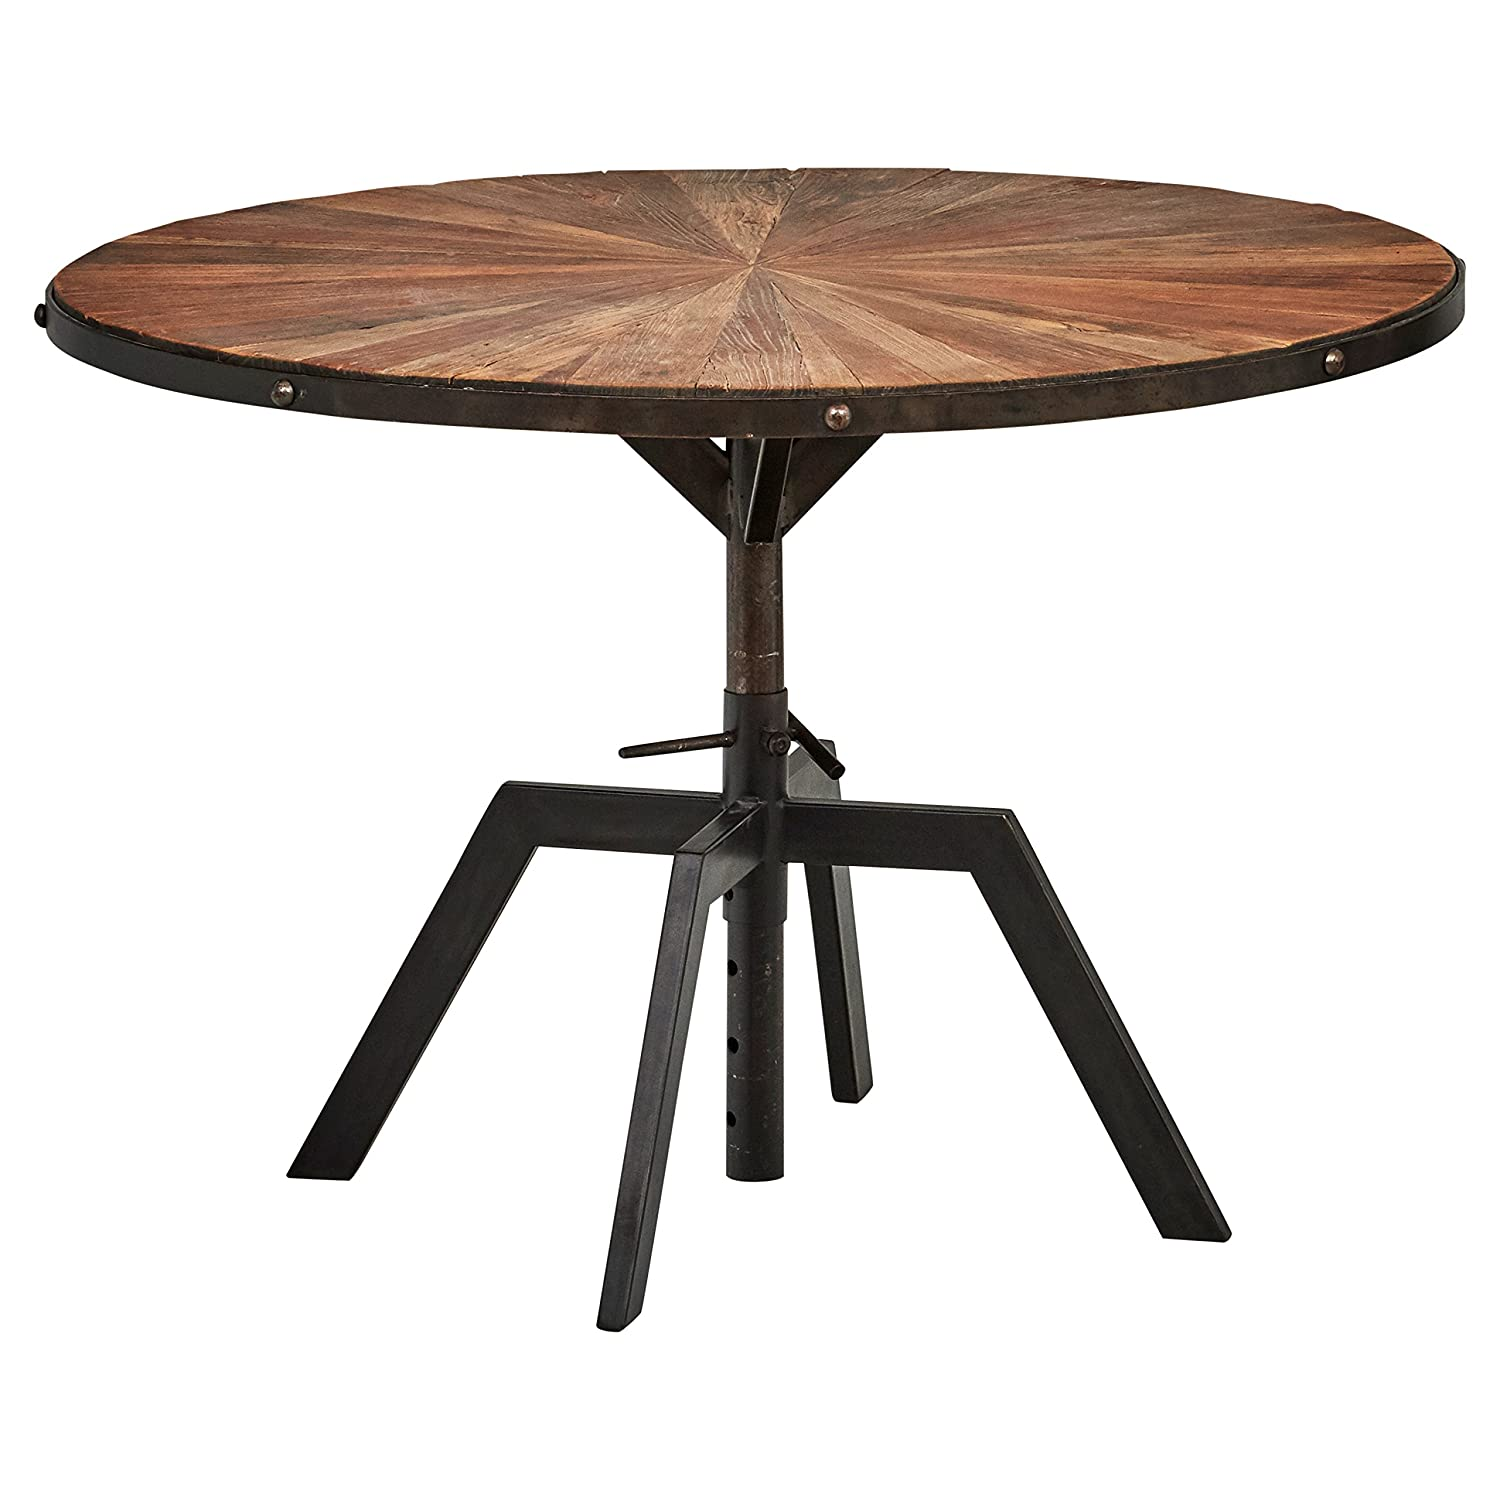 Rivet Rustic Round Industrial Dining Kitchen Table, 35.4 Inch Wide,  Recycled Elm Wood, Black, Metal